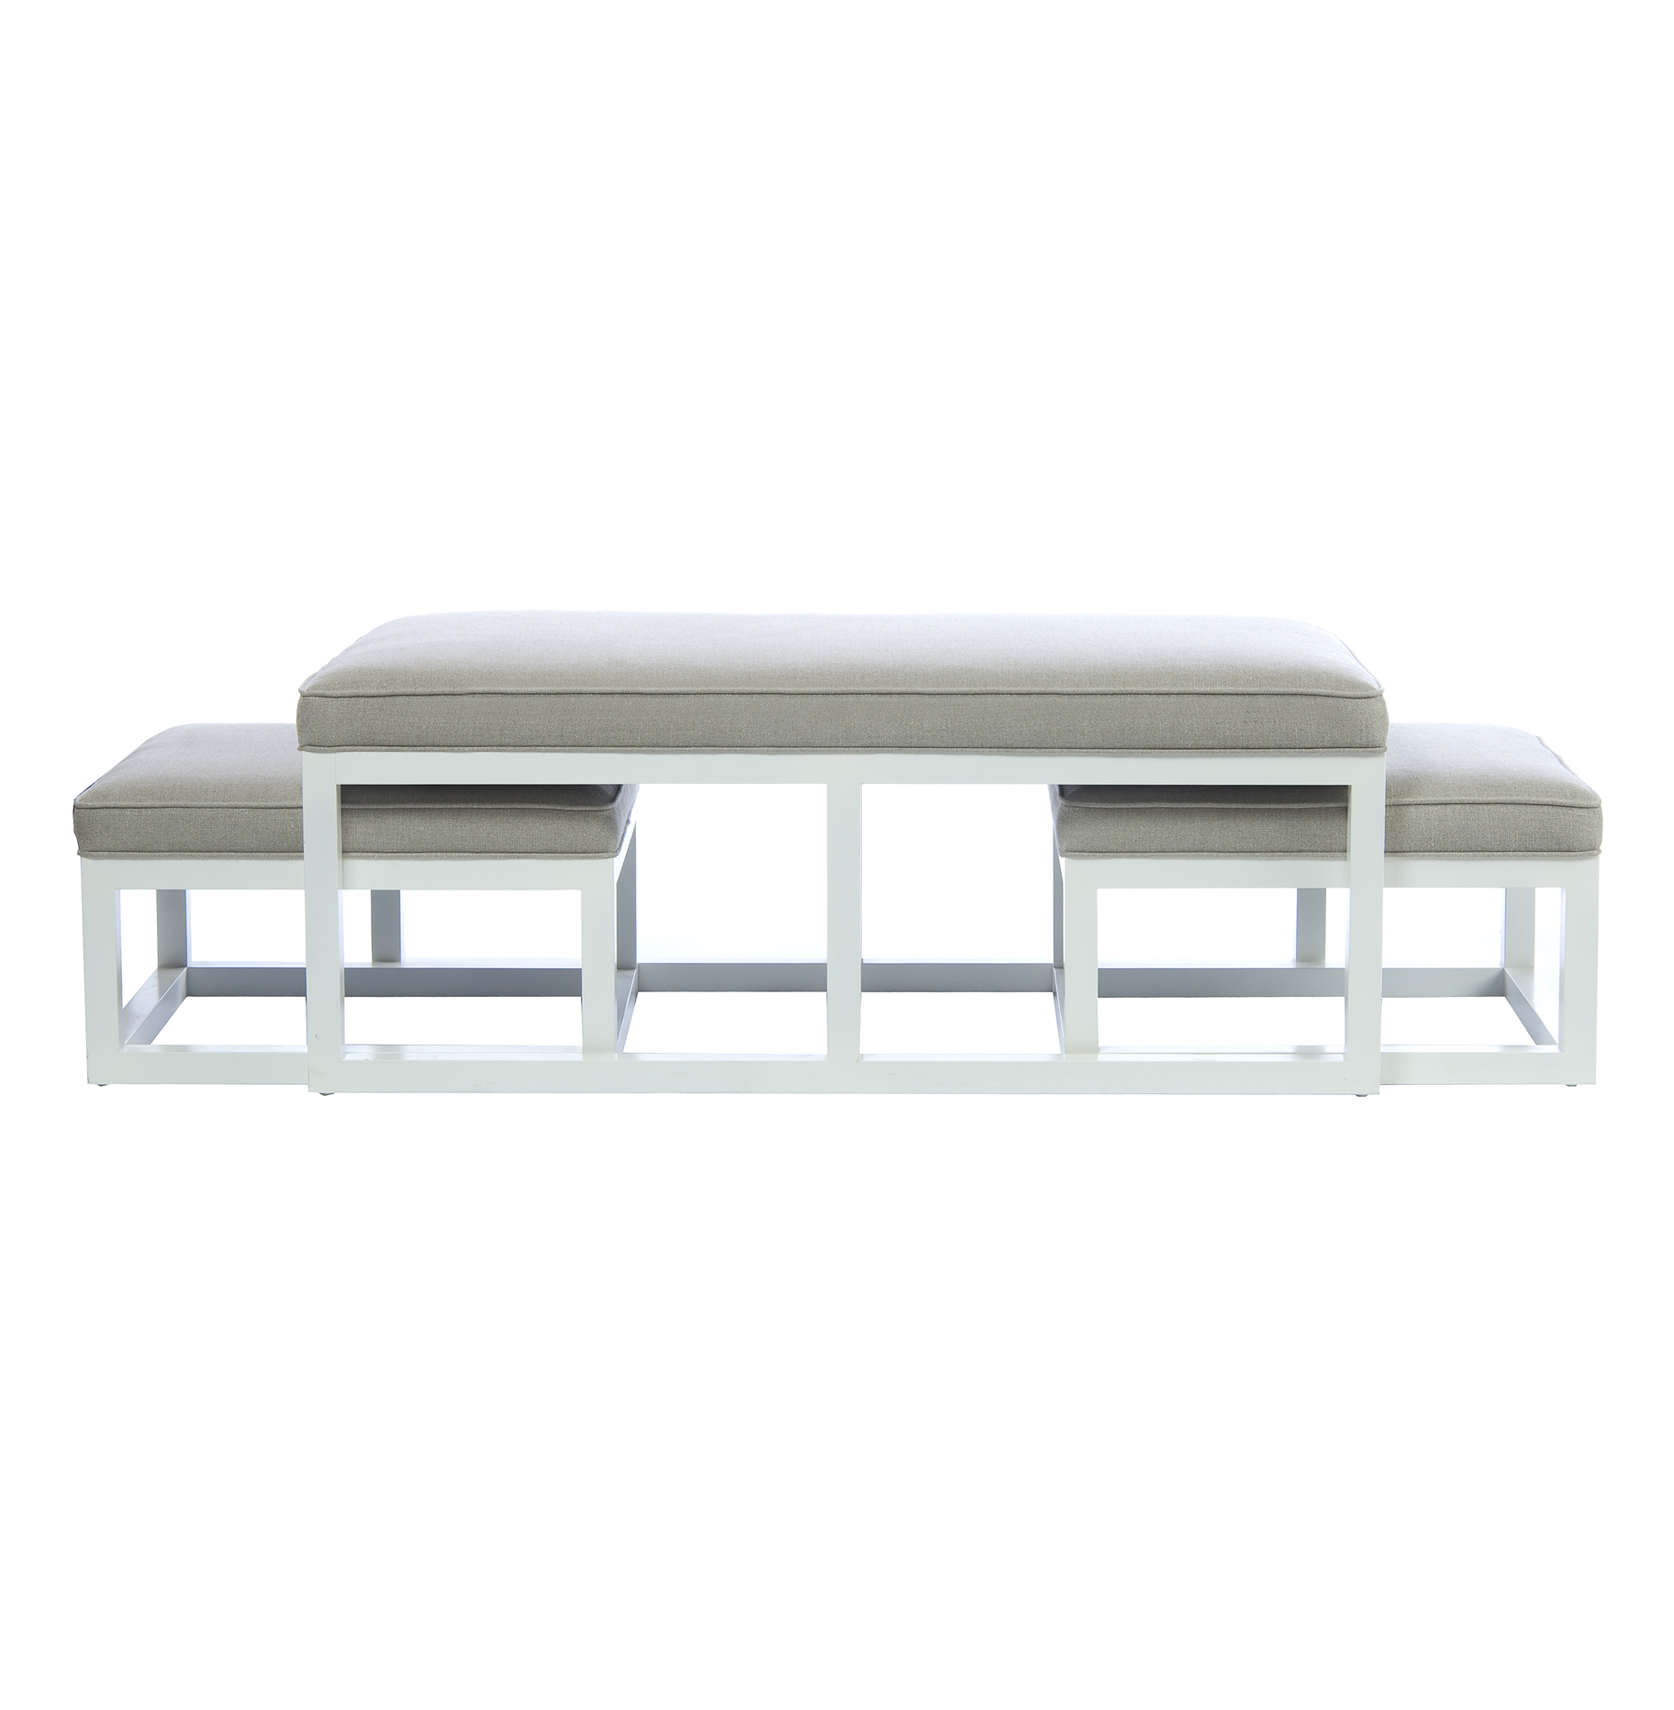 Chatham White Coffee Table Ottoman with Stools - Flax Linen